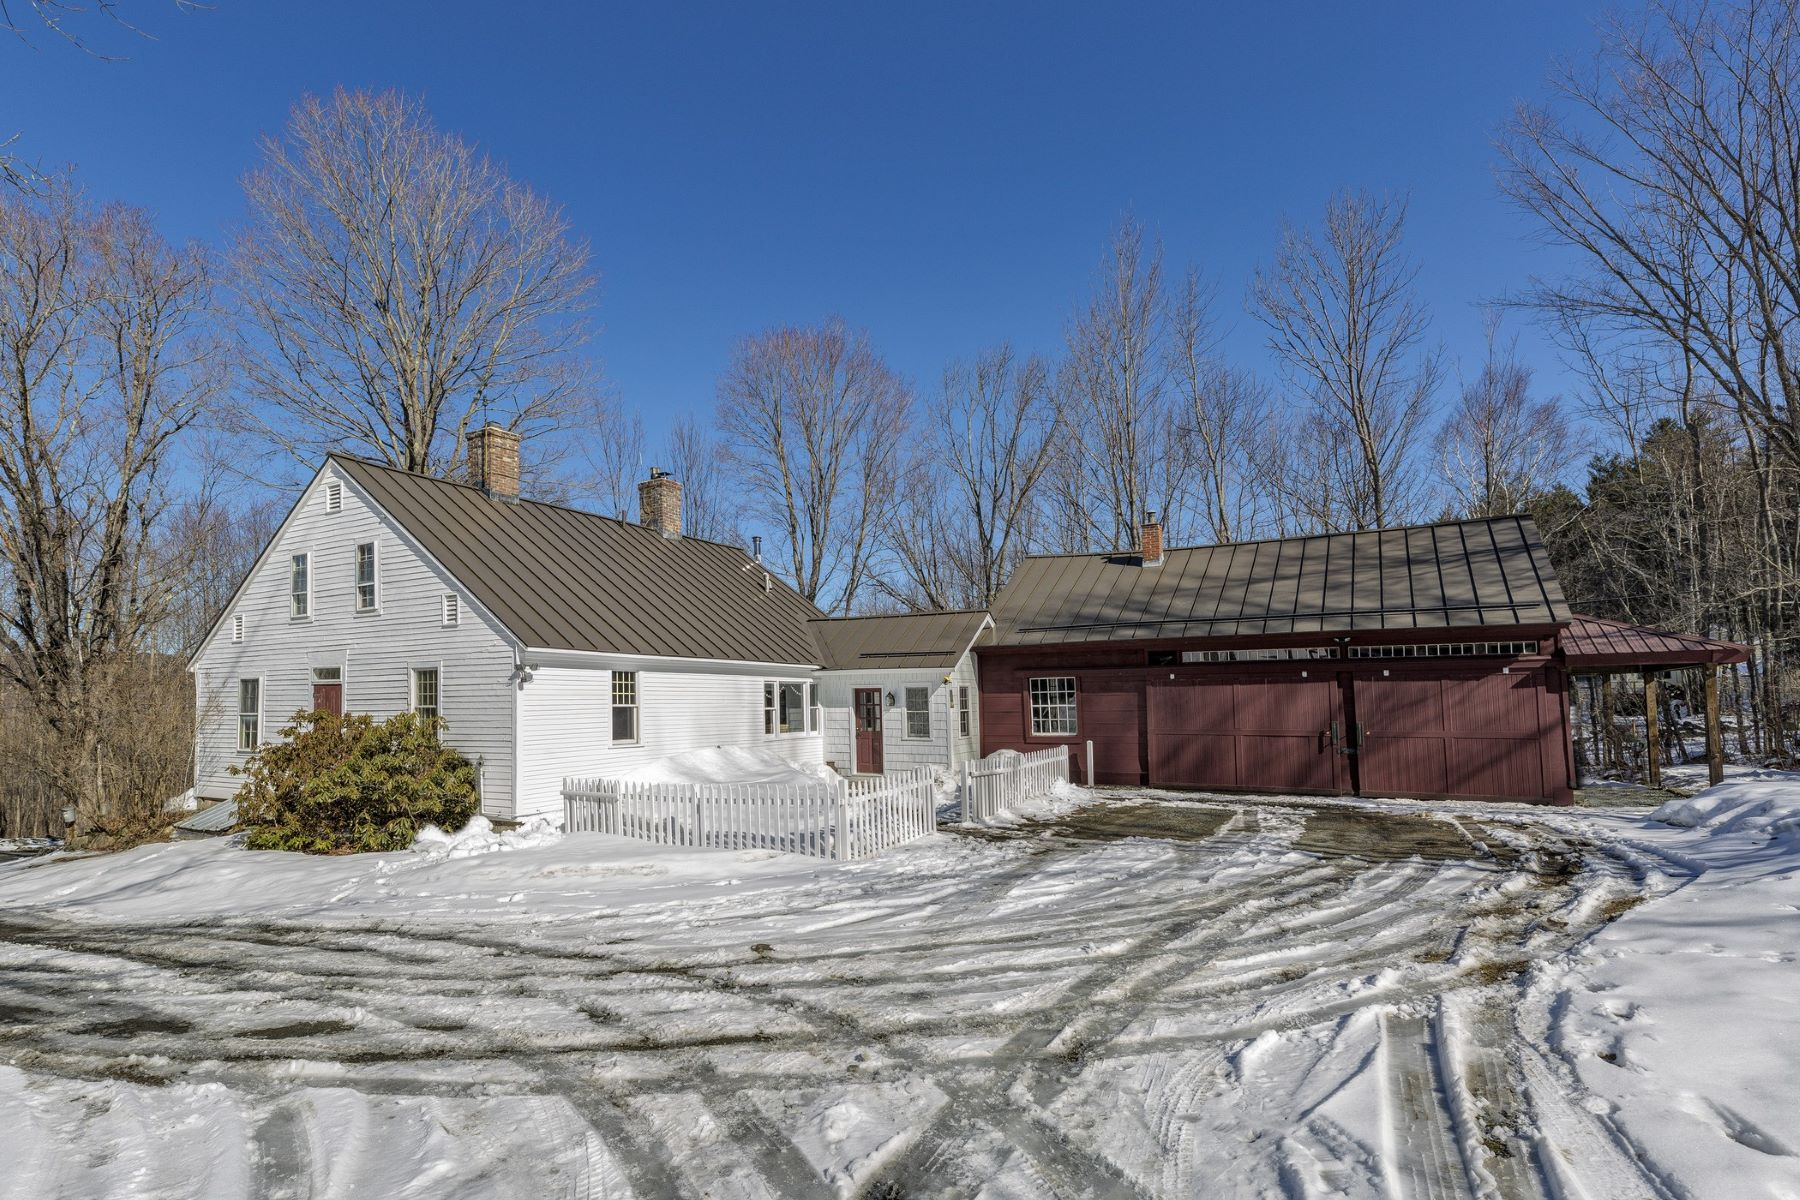 Single Family Home for Sale at Charming New England Cape 464 Boys Camp Rd Enfield, New Hampshire 03748 United States